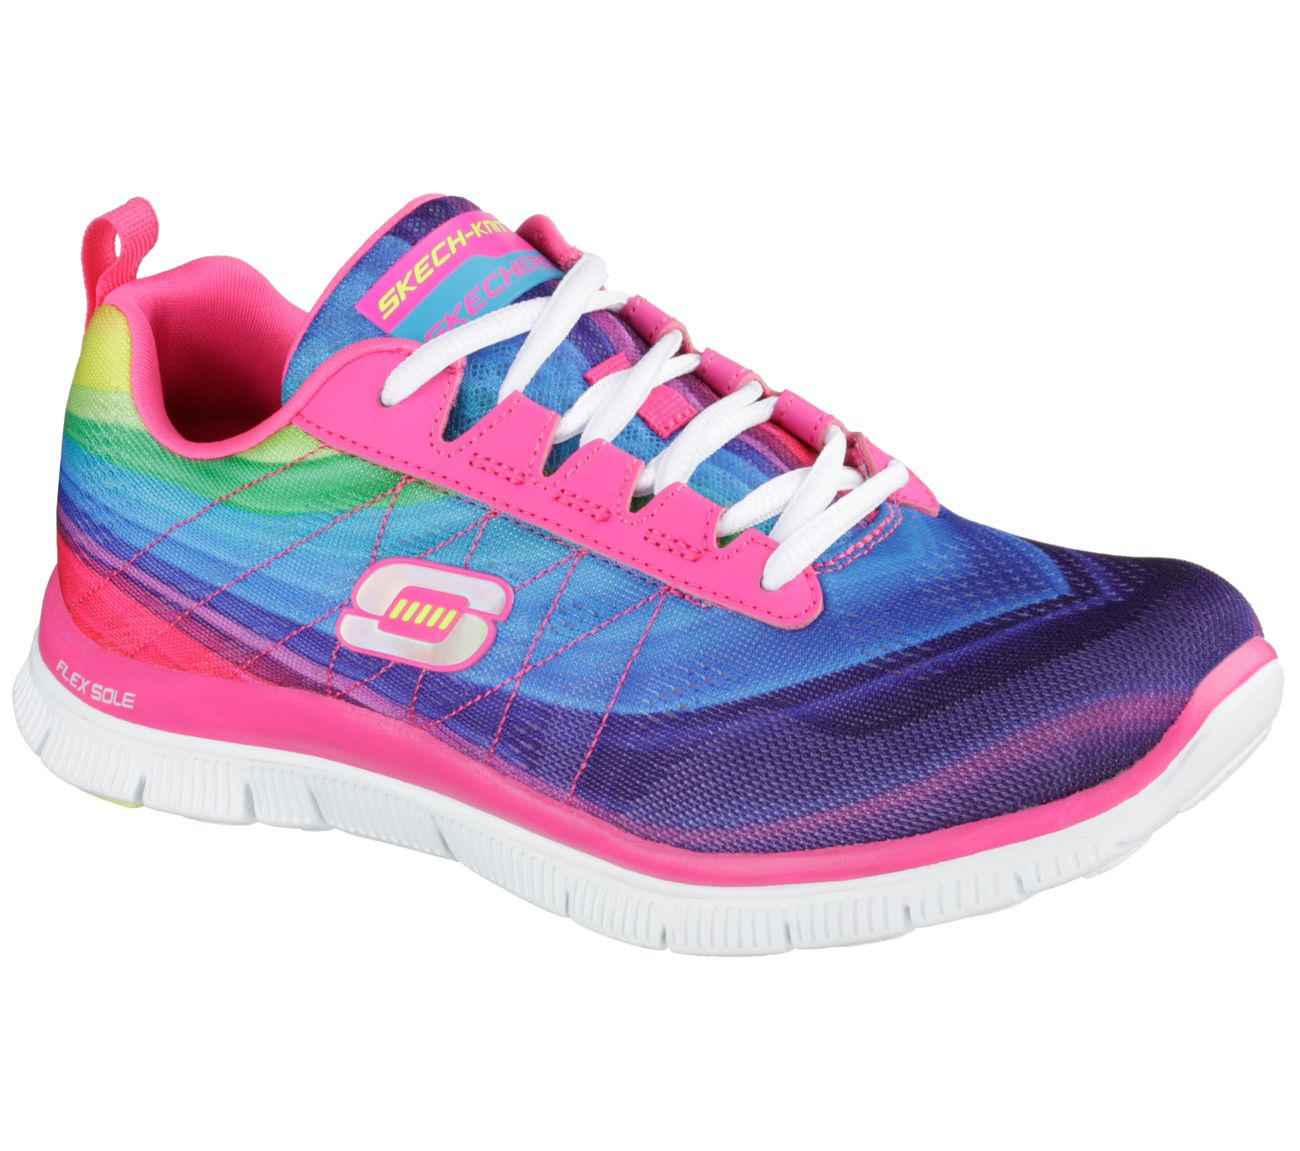 Skechers Womens Tennis shoes Neon Sneakers Size 6 Laceup Multicolor Pink Green